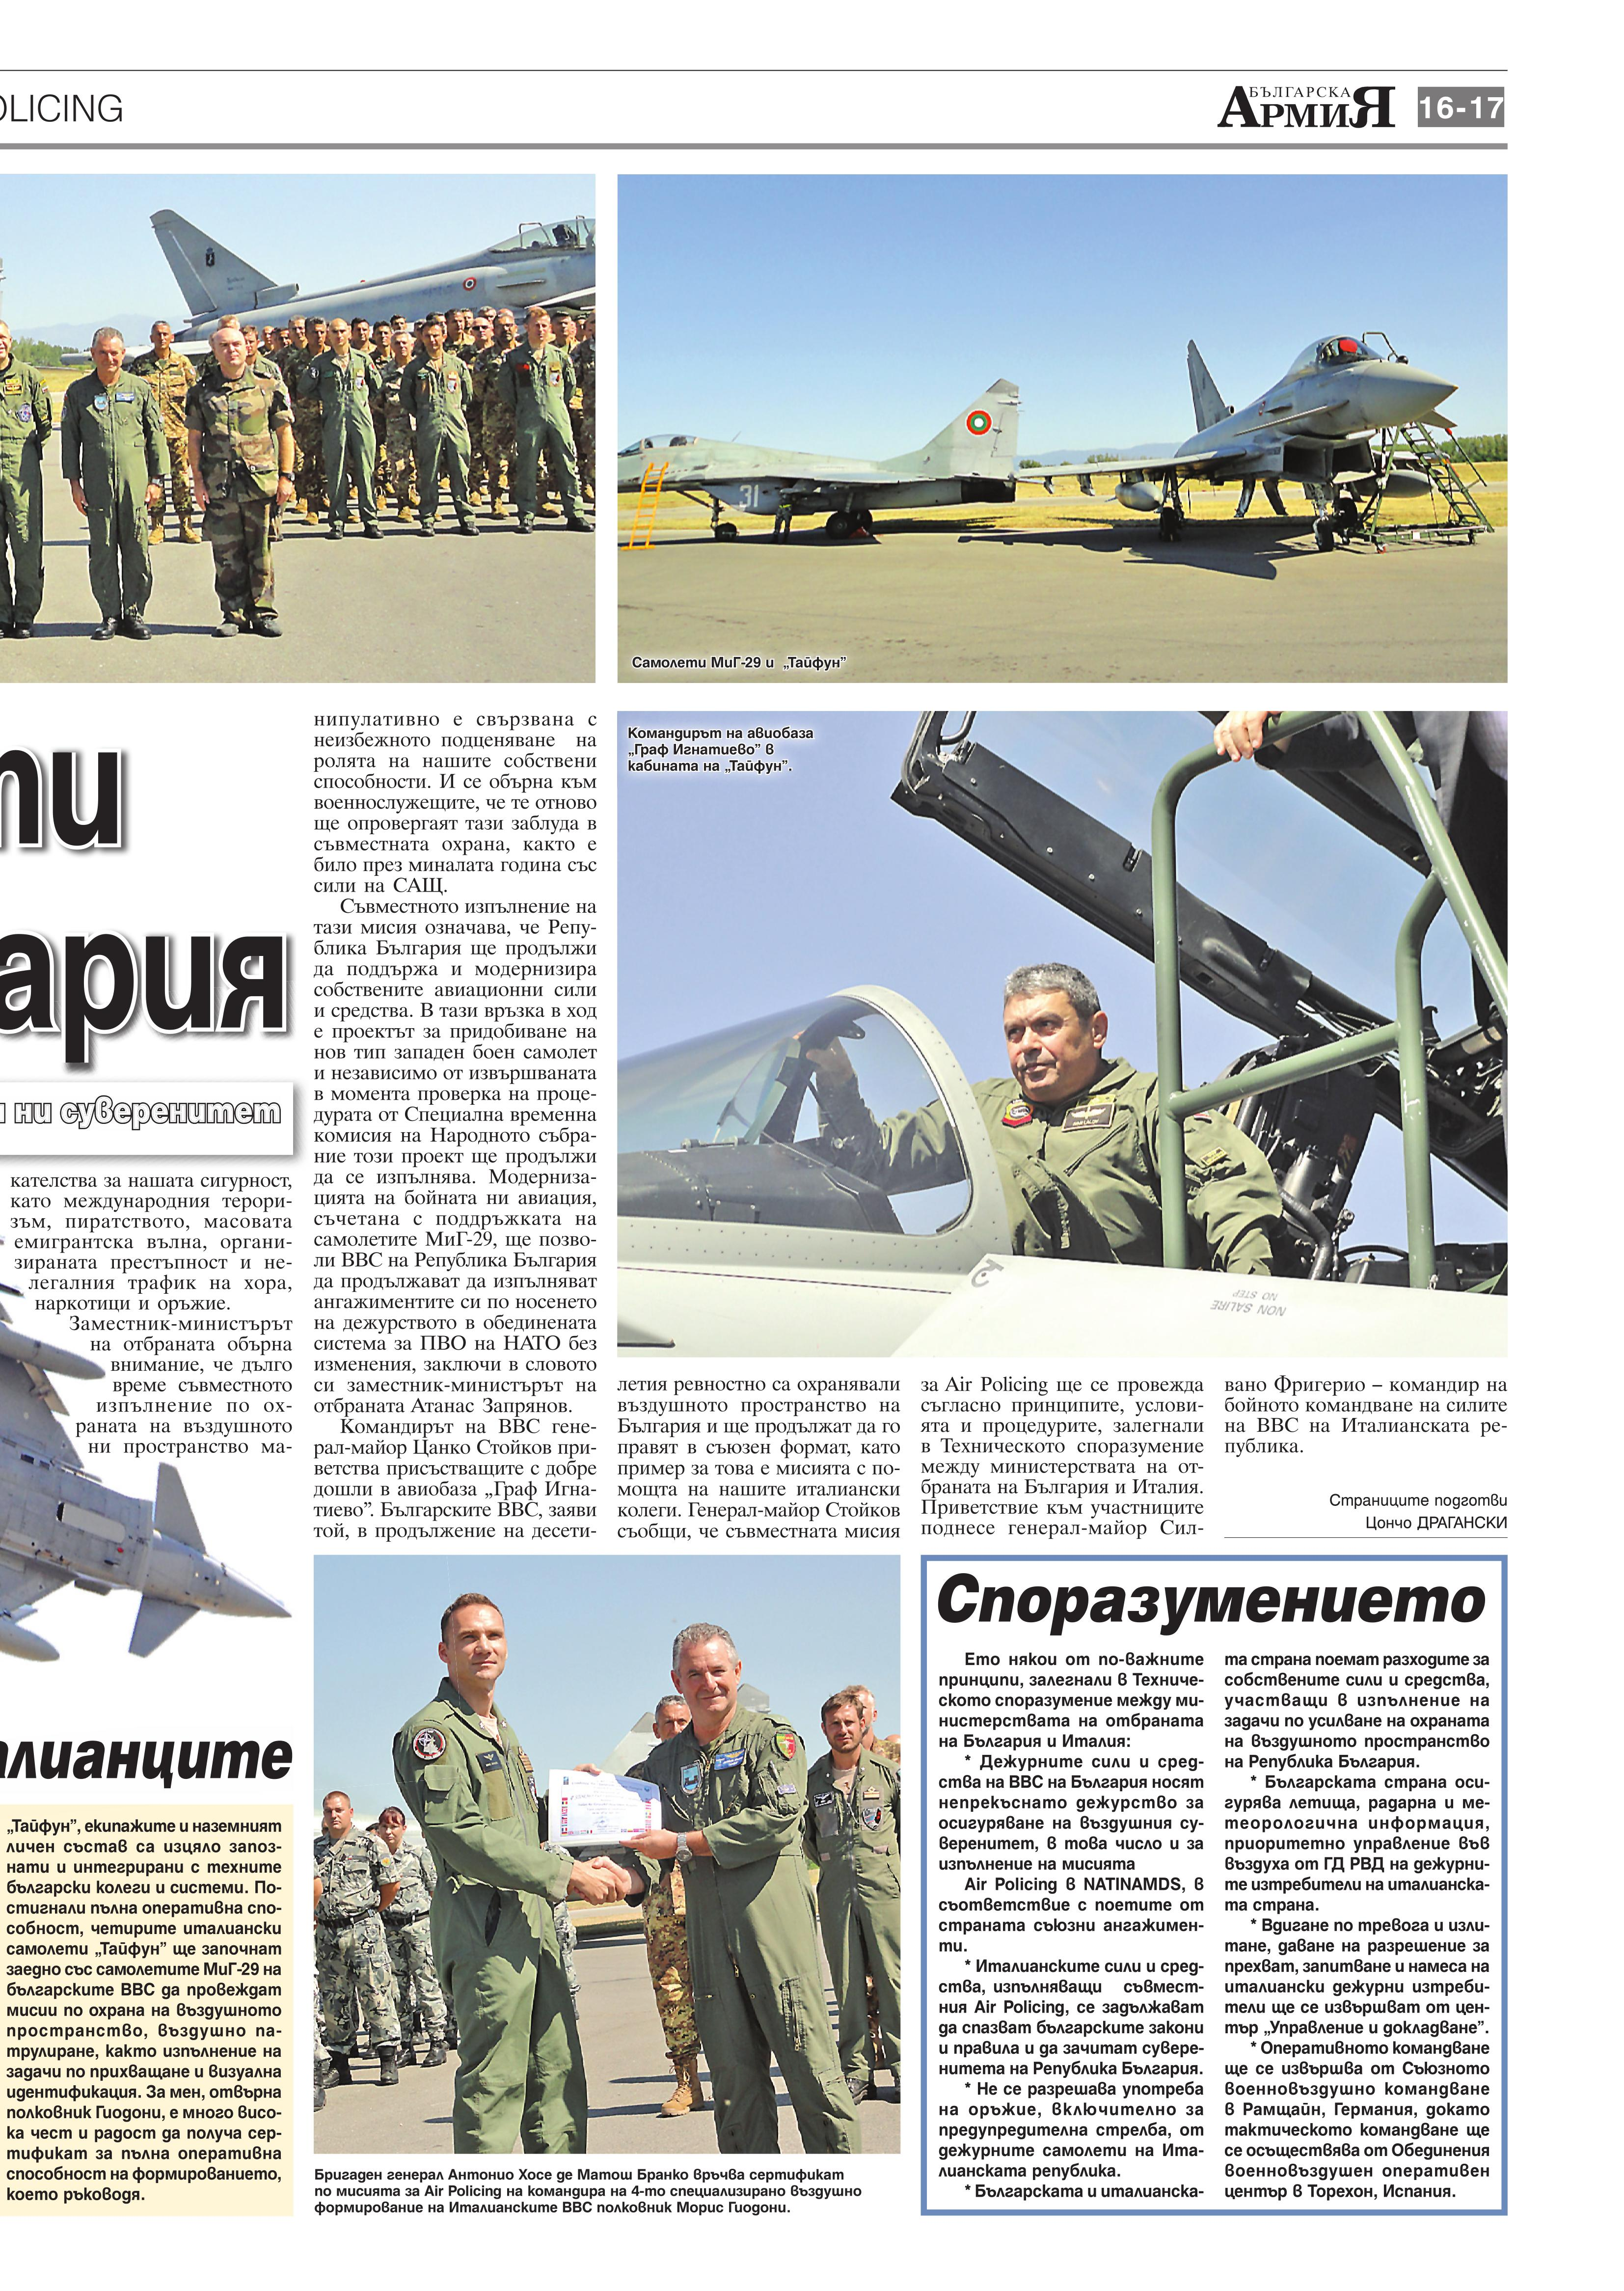 https://www.armymedia.bg/wp-content/uploads/2015/06/17.page1_-26.jpg